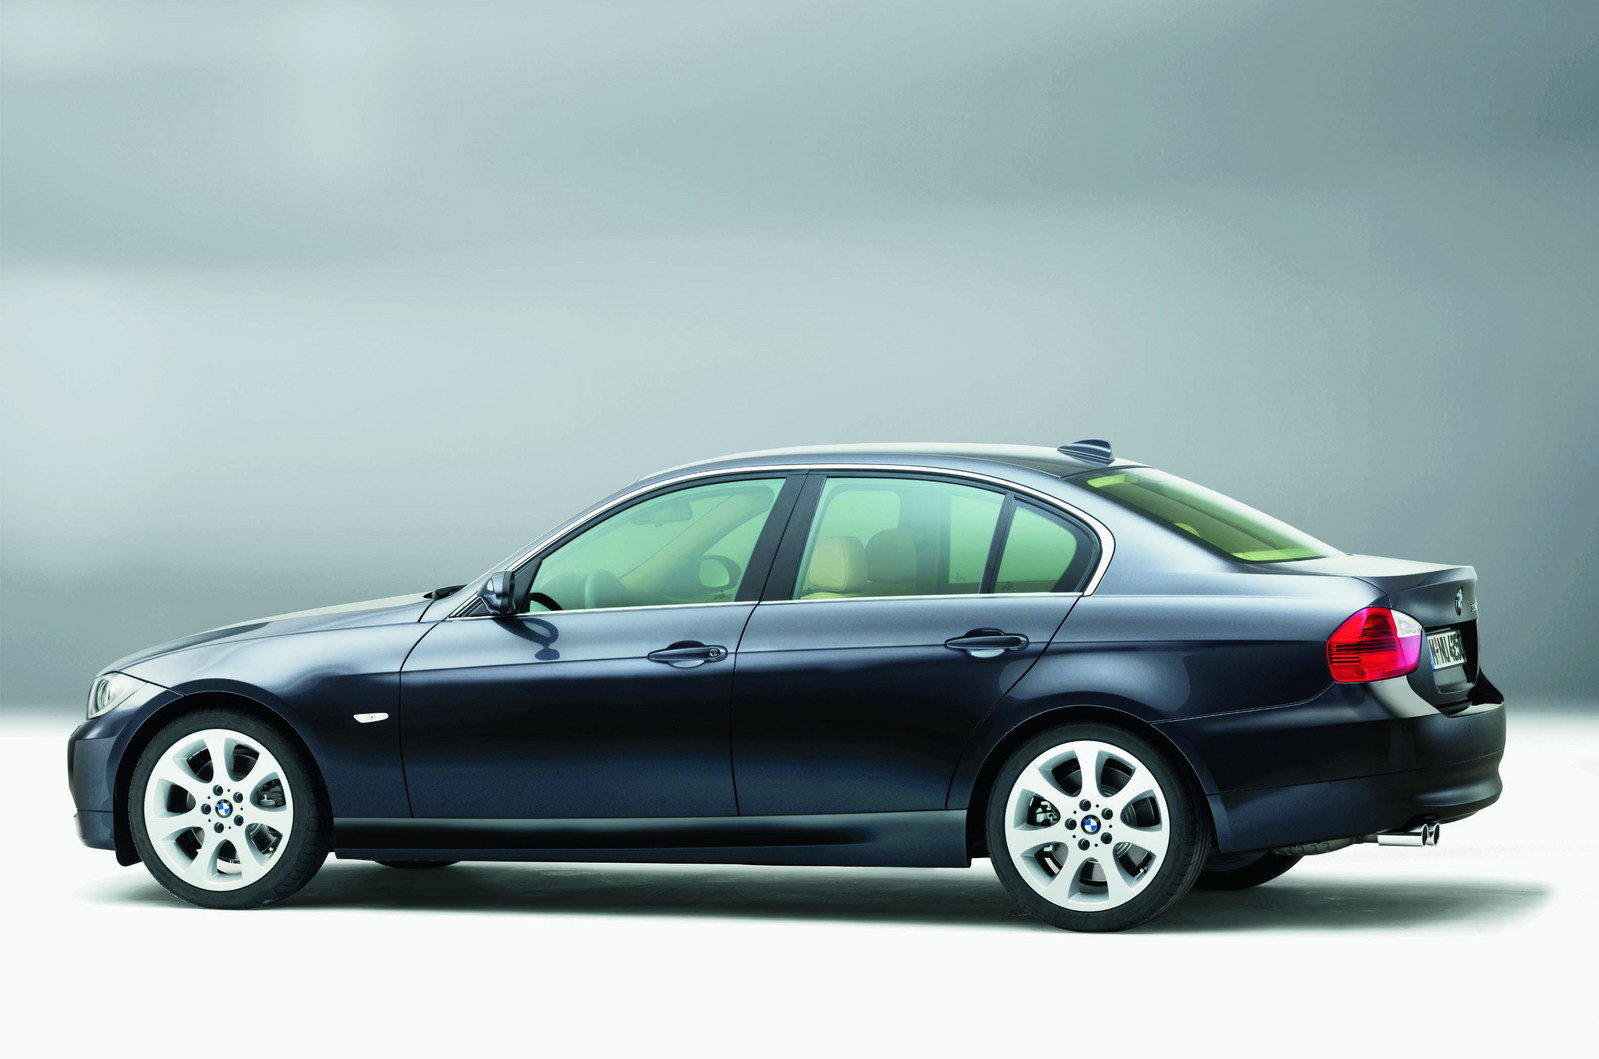 2007 bmw 3 series picture 119794 car review top speed. Black Bedroom Furniture Sets. Home Design Ideas